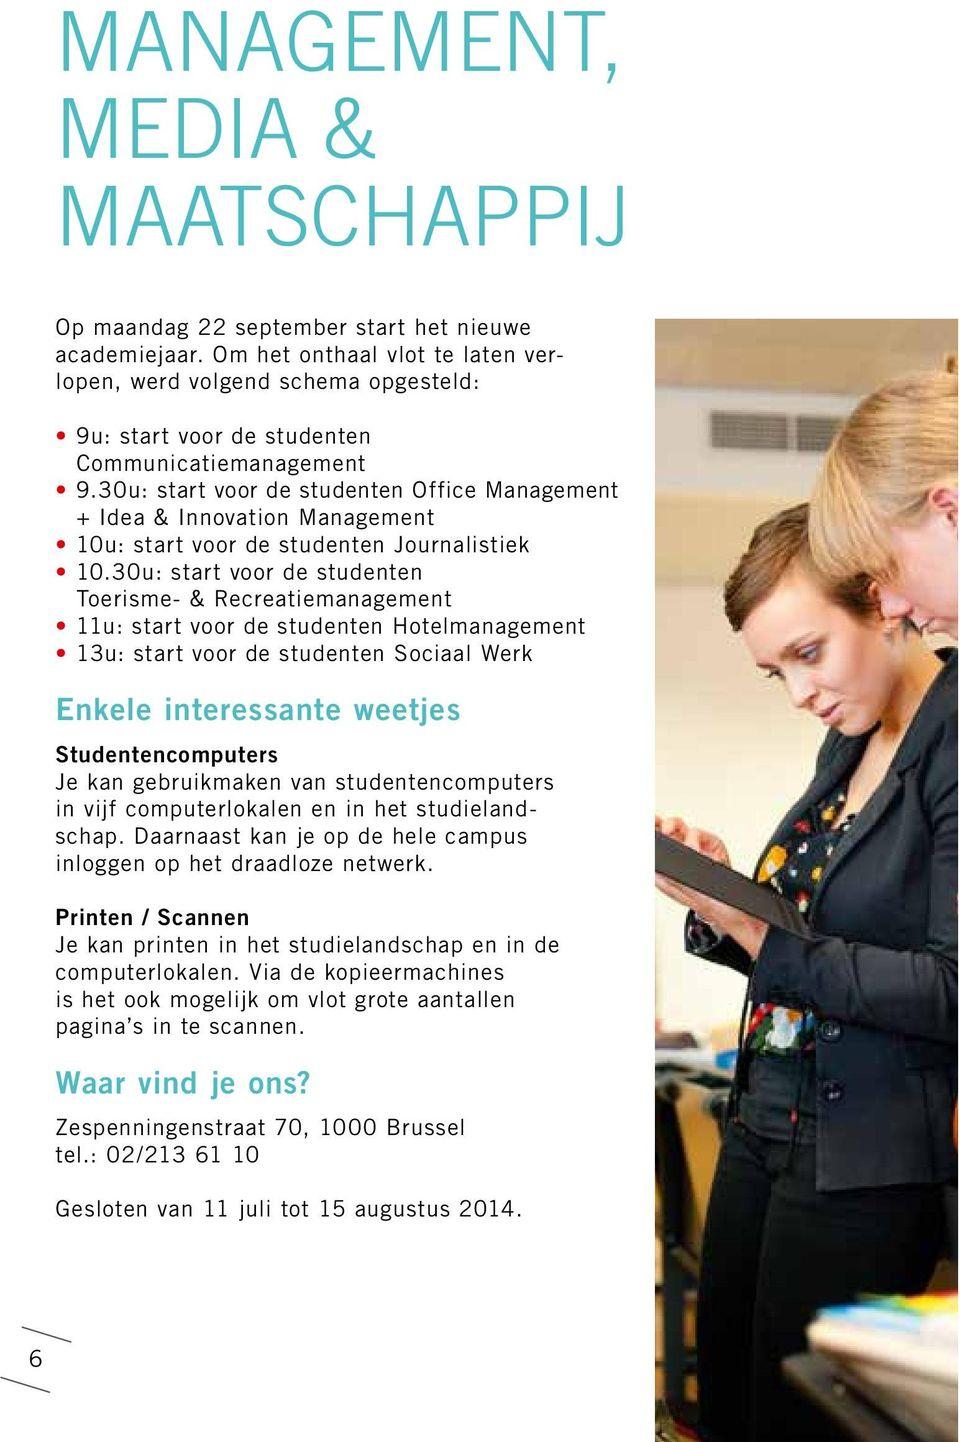 30u: start voor de studenten Office Management + Idea & Innovation Management 10u: start voor de studenten Journalistiek 10.